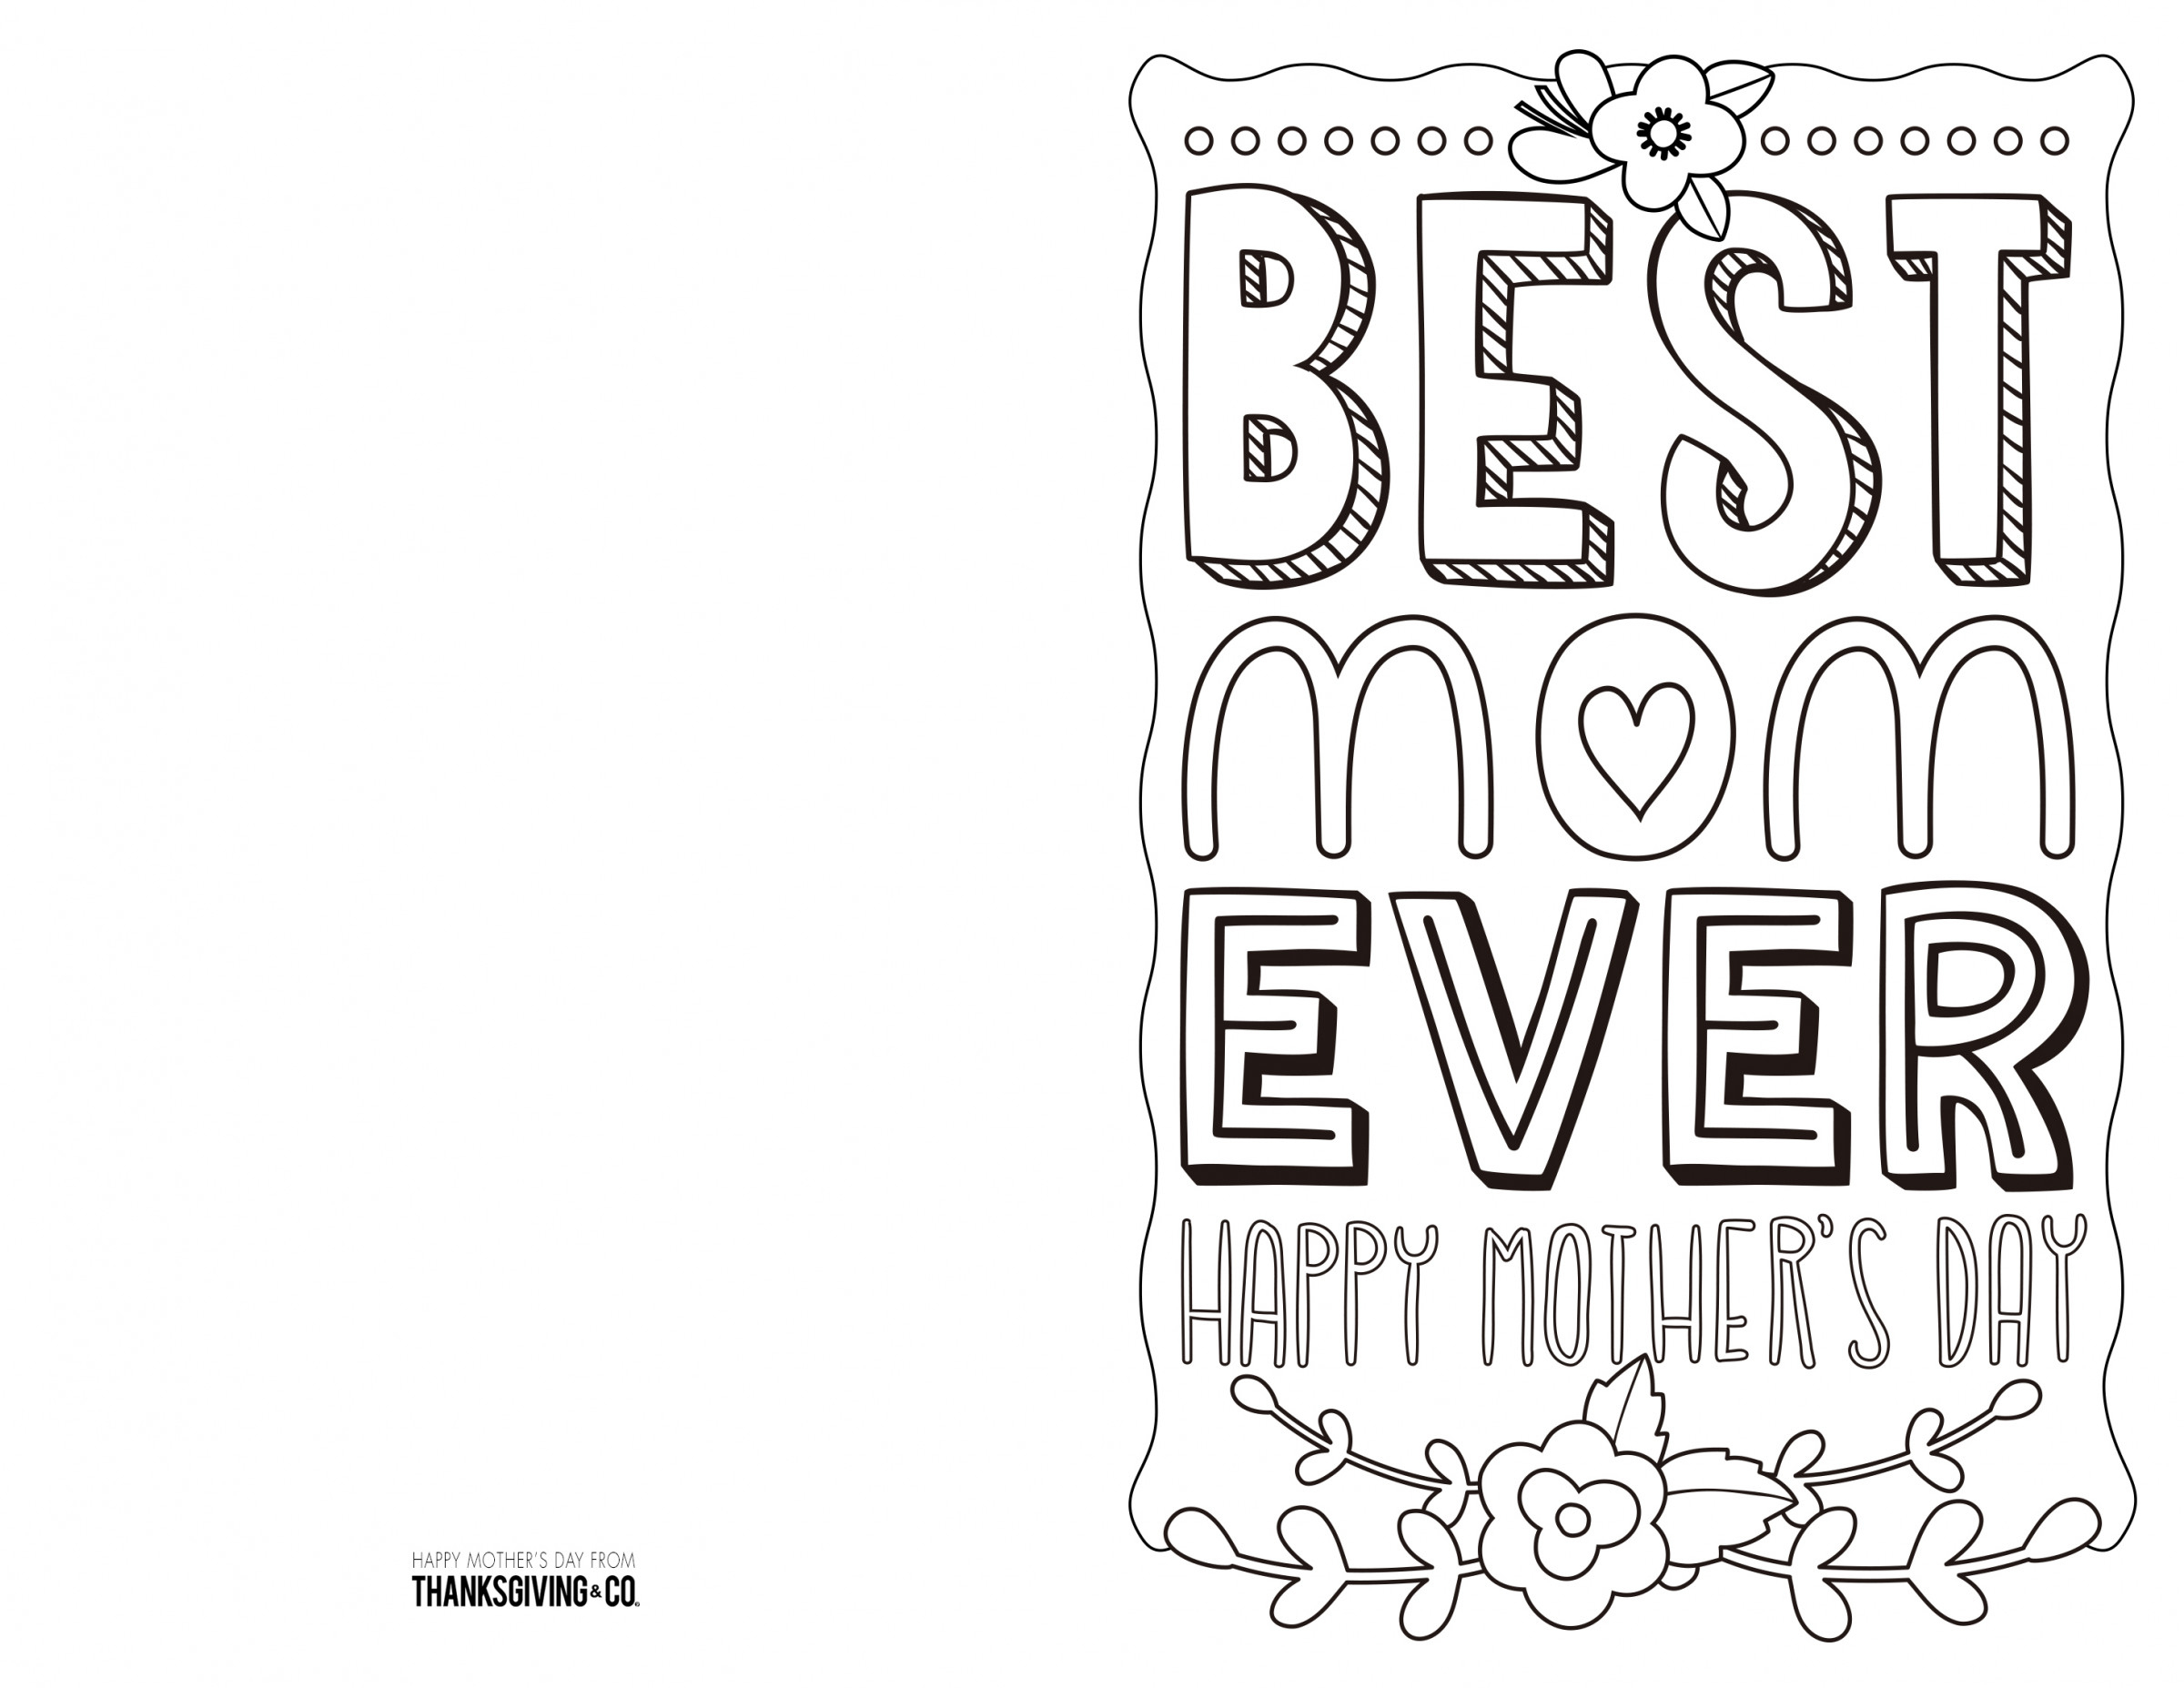 4 Free Printable Mother's Day Ecards To Color - Thanksgiving - Free Printable Mothers Day Cards To Color